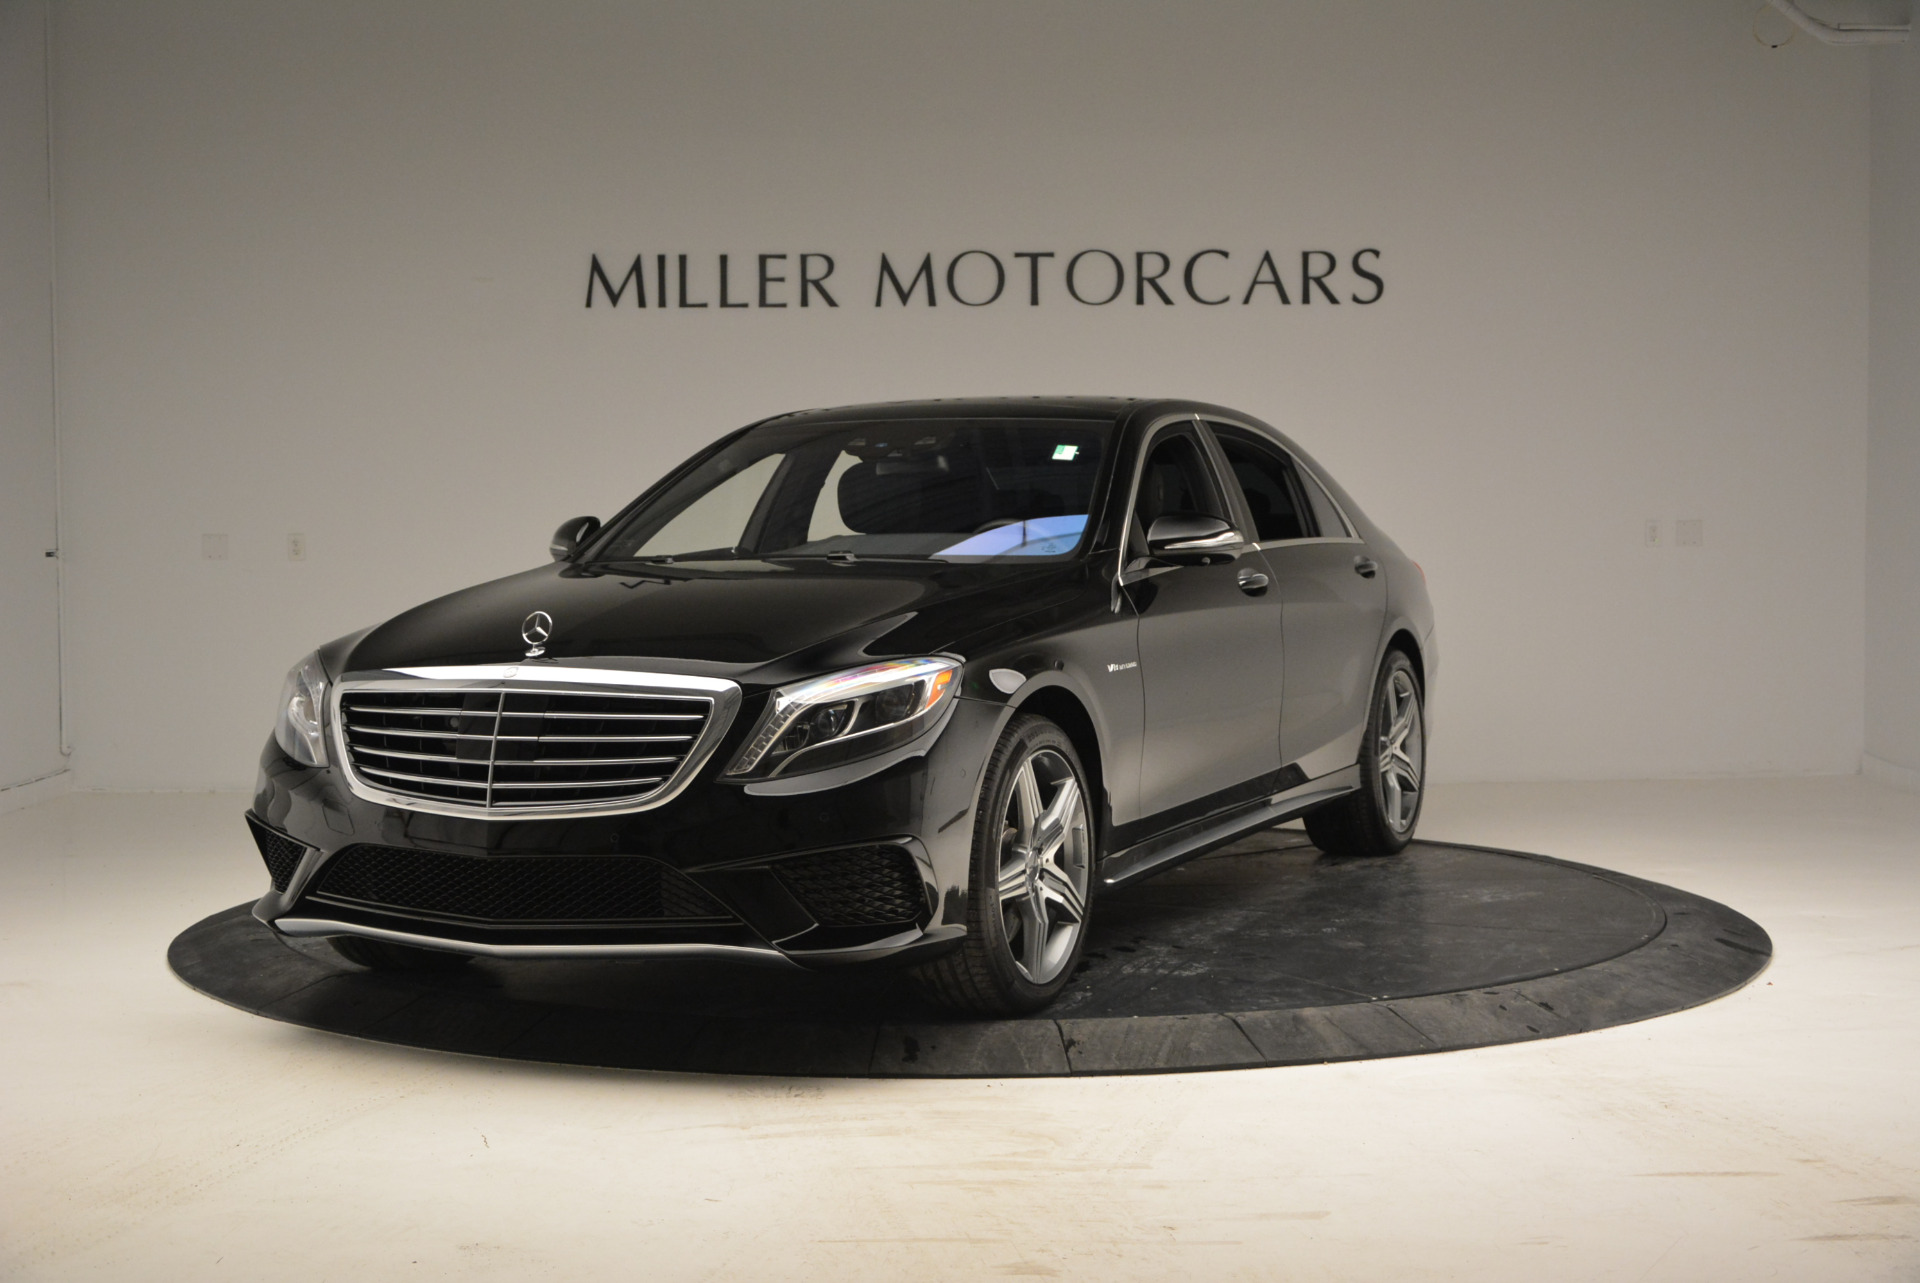 Used 2014 Mercedes Benz S-Class S 63 AMG for sale Sold at McLaren Greenwich in Greenwich CT 06830 1